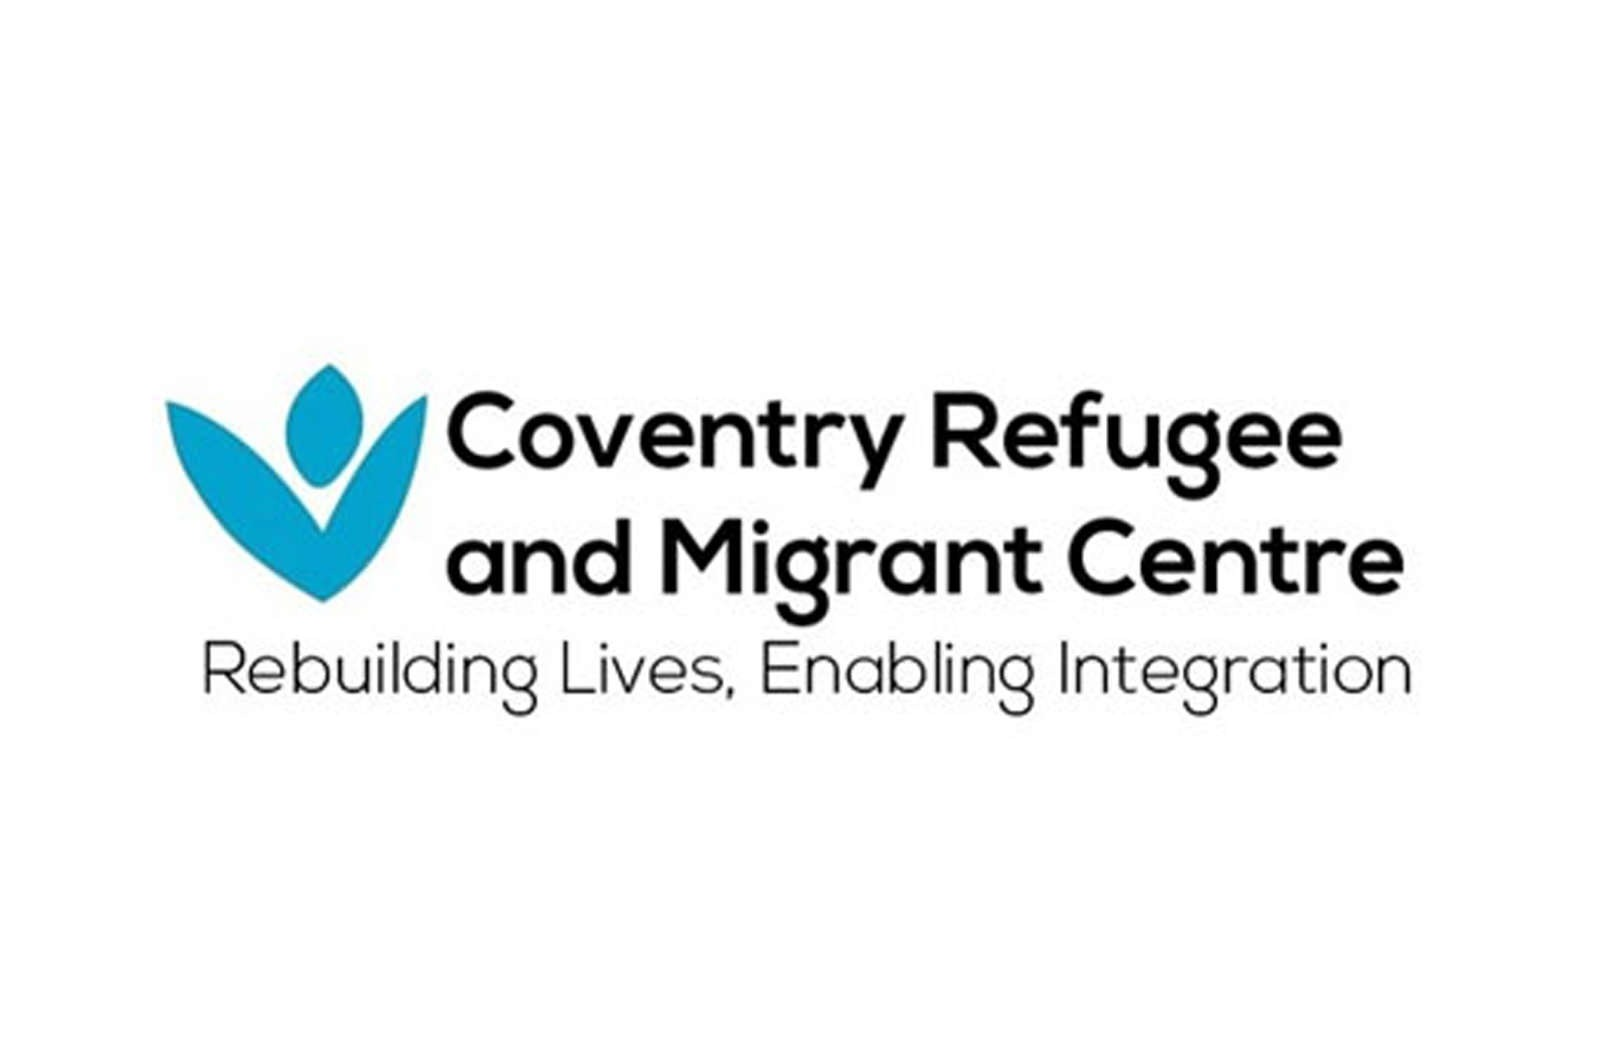 Coventry Refugee